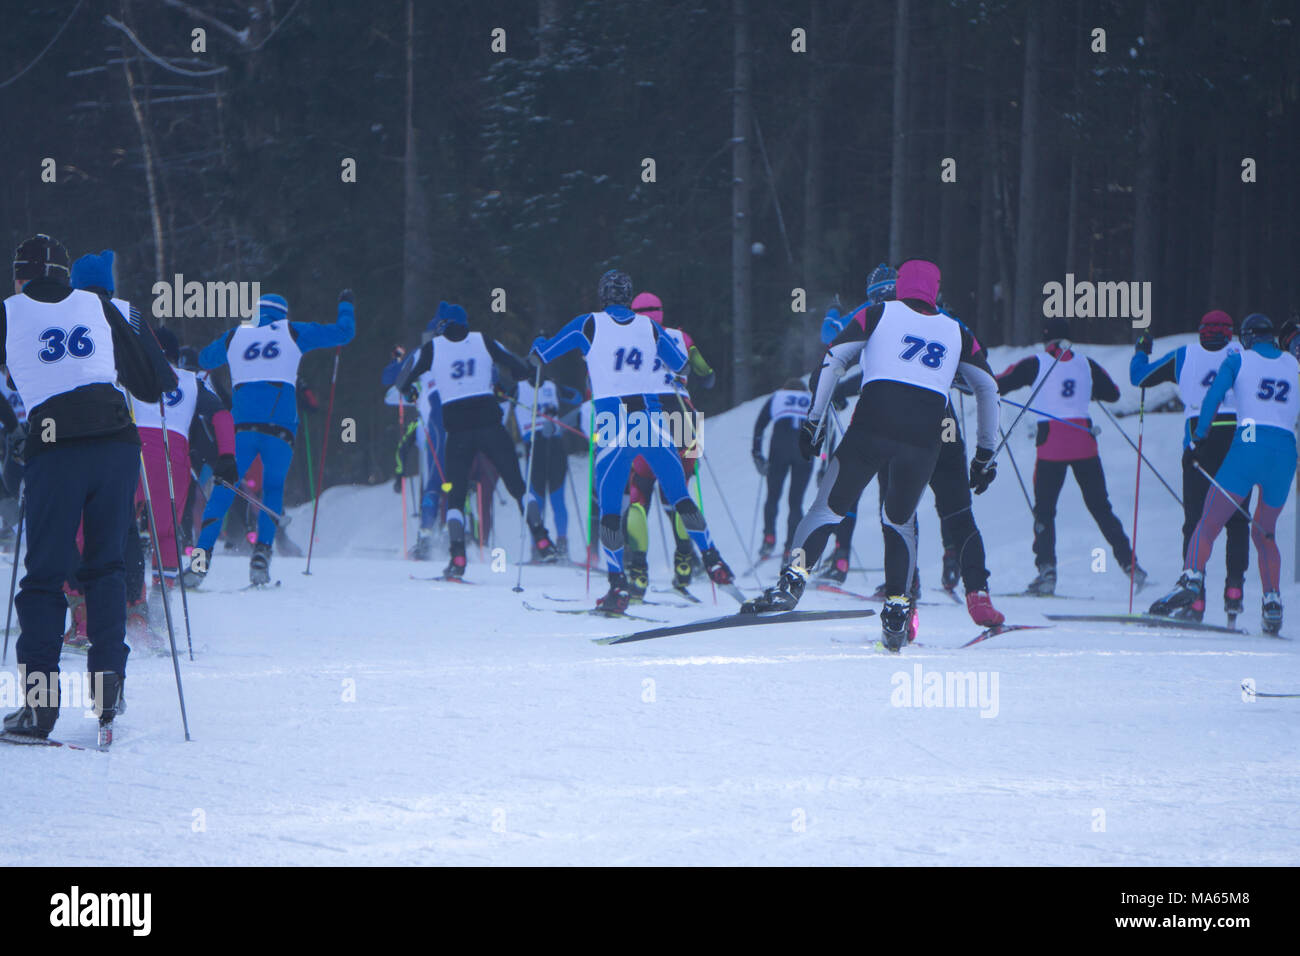 Participants of traditional mass skiing competitions at long and short distances - Stock Image